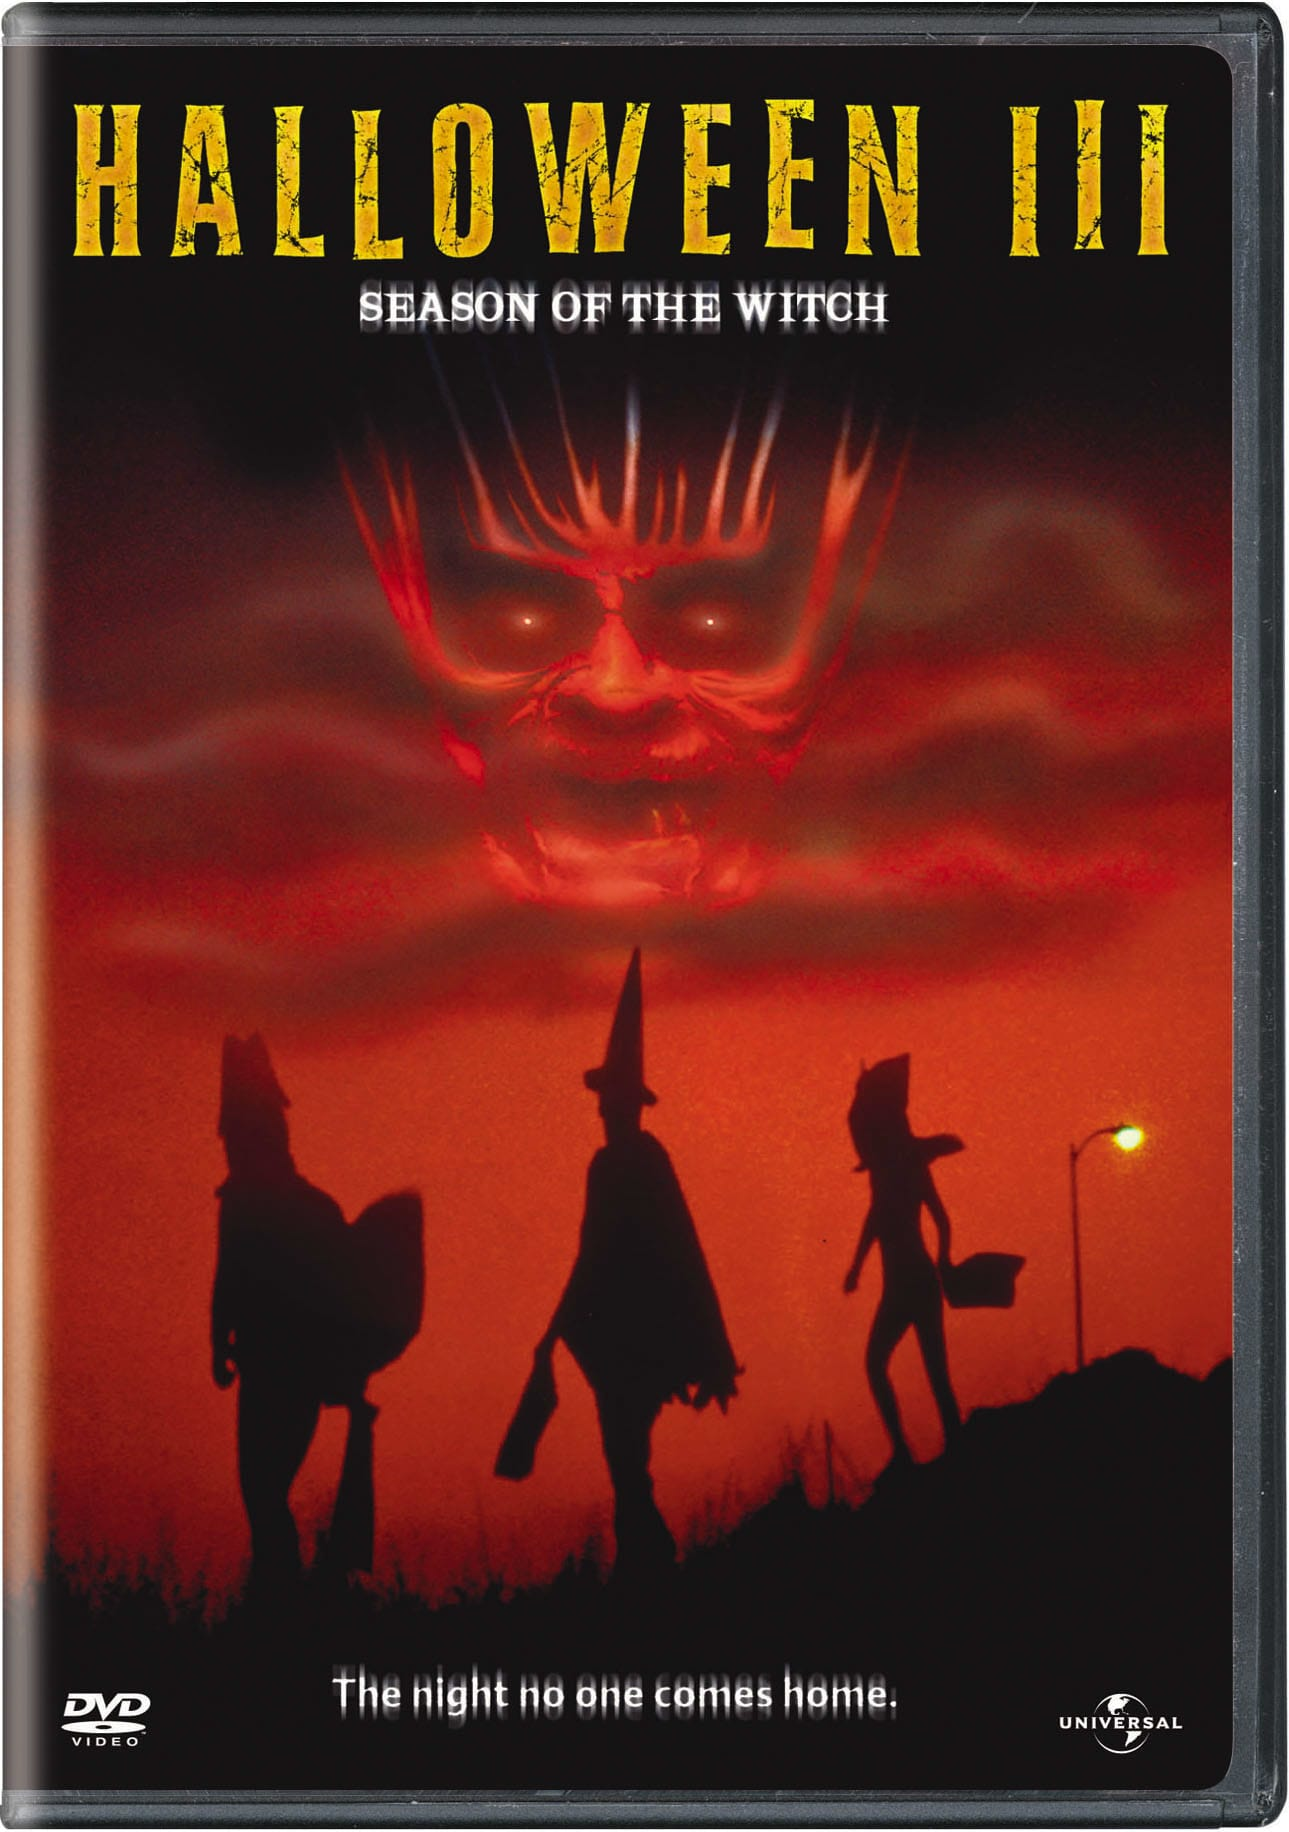 Halloween 3 - Season of the Witch [DVD]